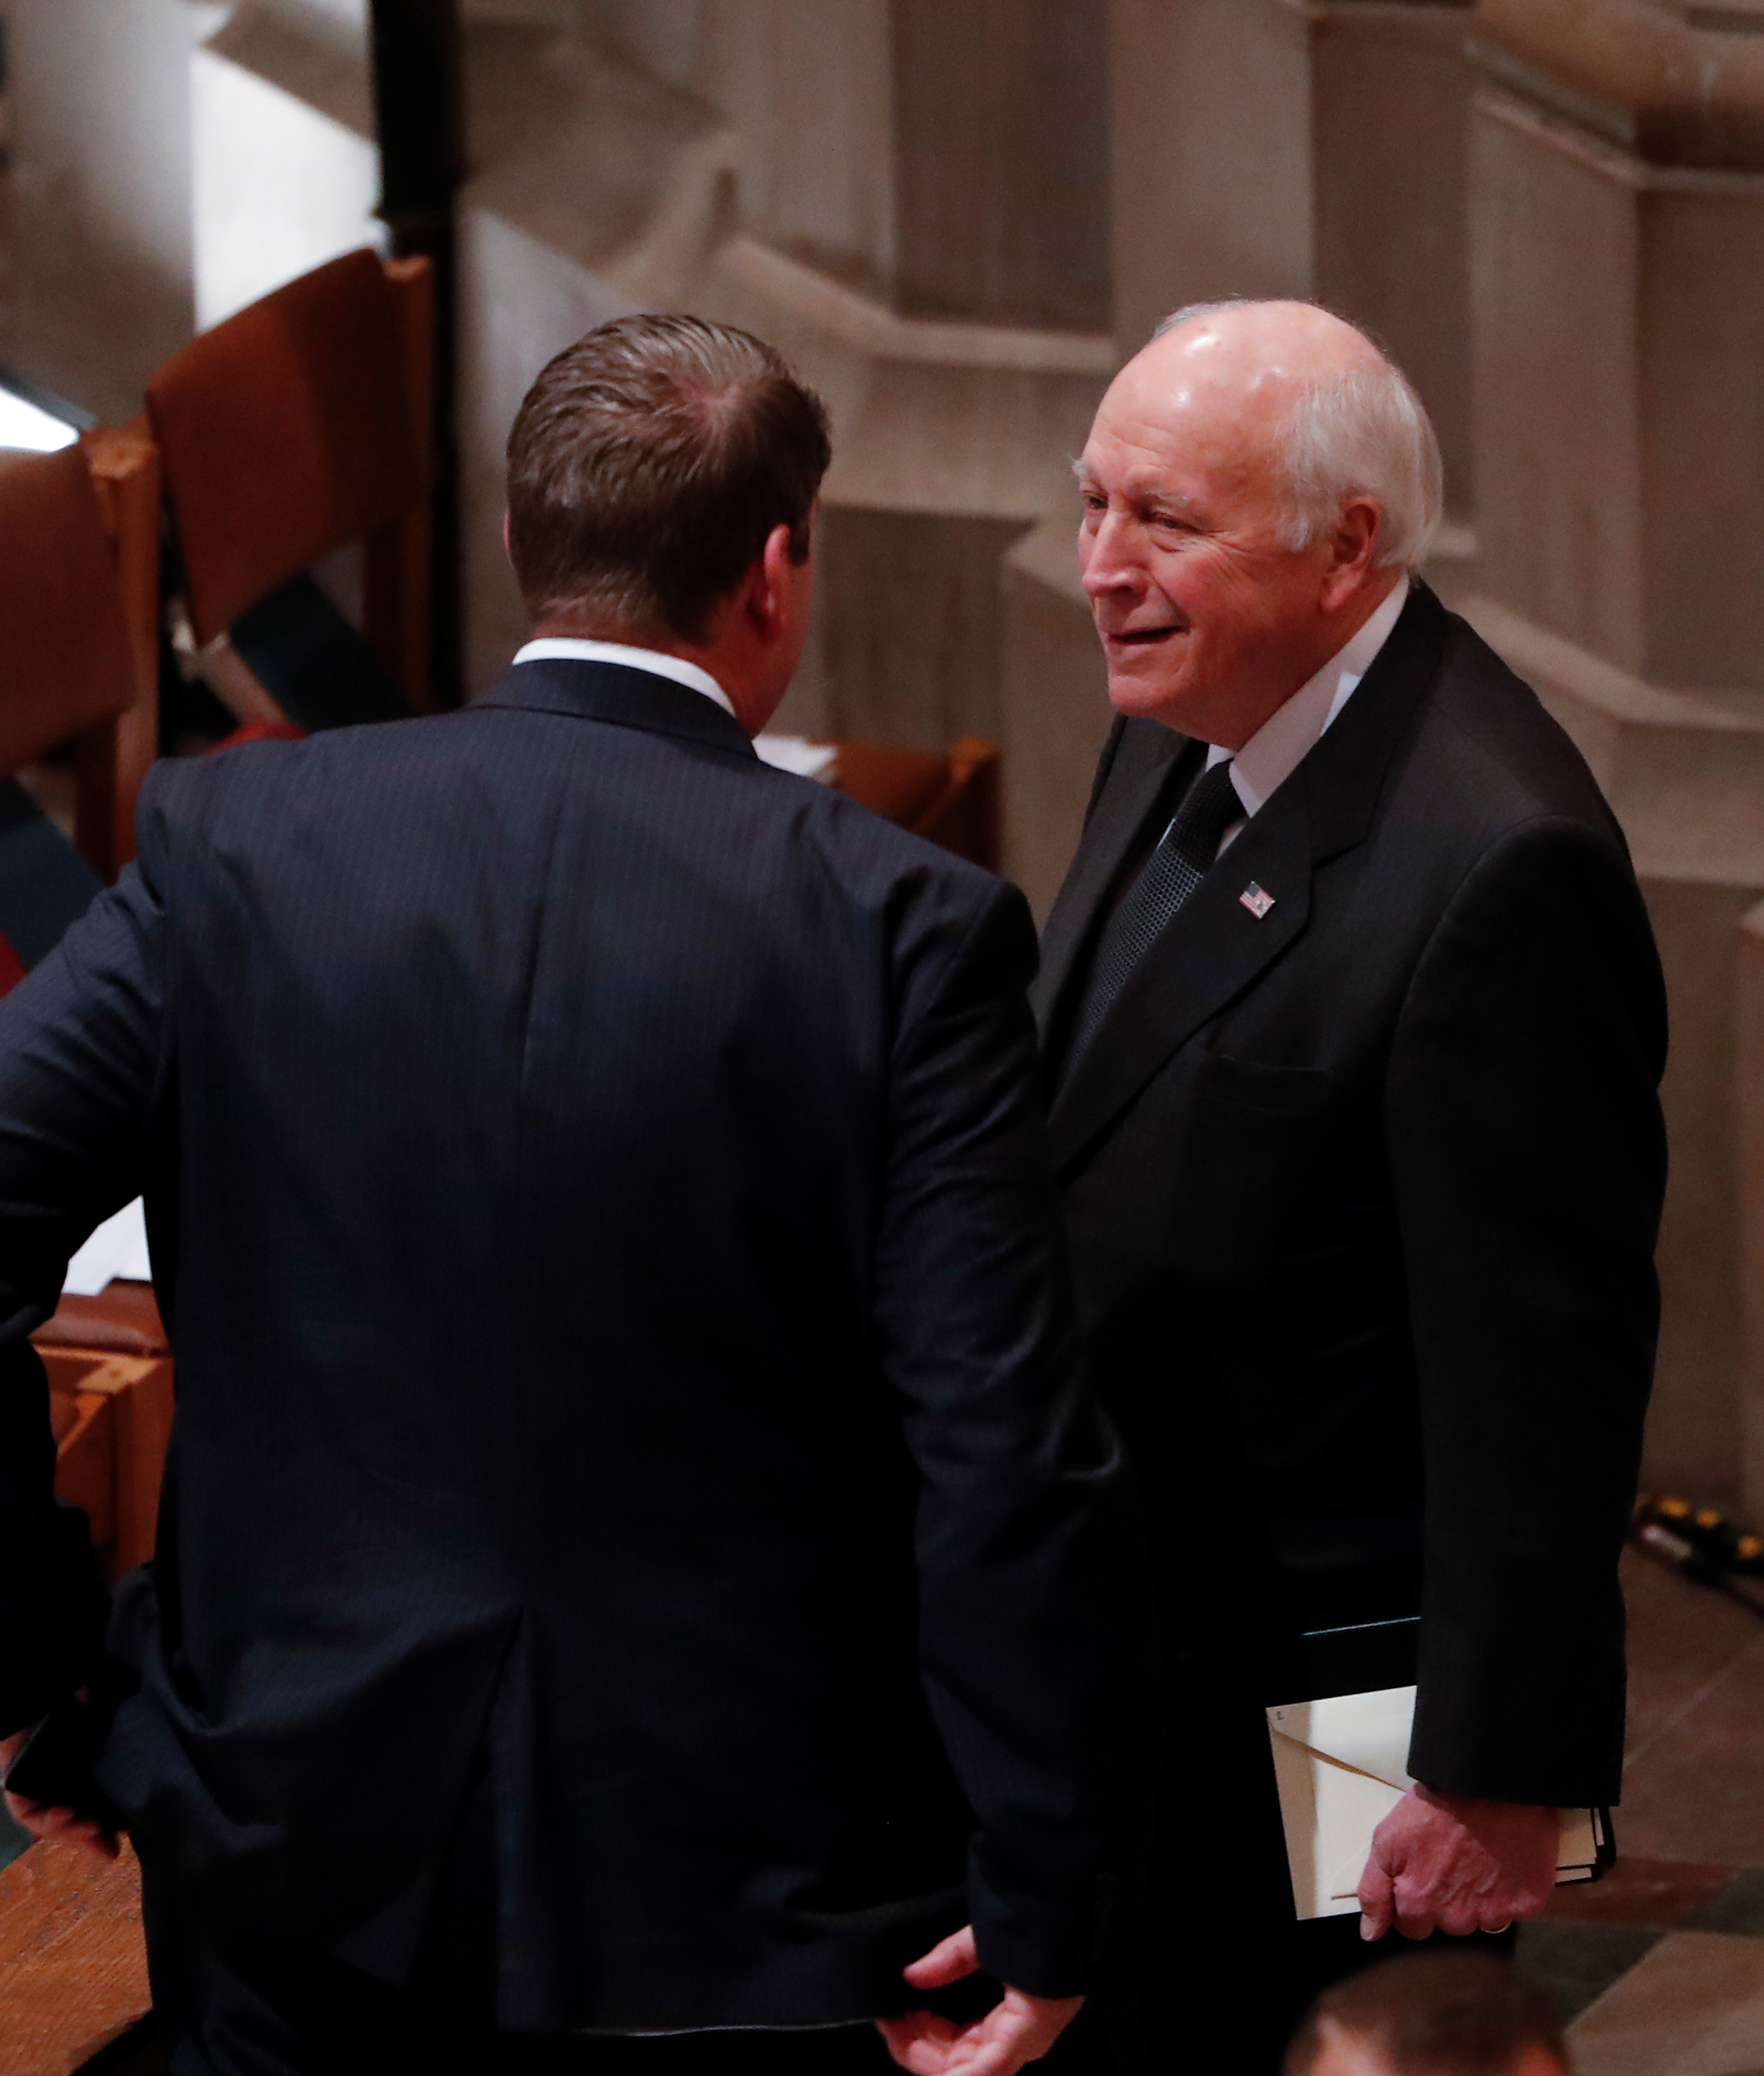 Former United States Vice President Dick Cheney arrives for the funeral services for former United States President George H. W. Bush at the National Cathedral, in Washington, DC on Dec. 5, 2018.